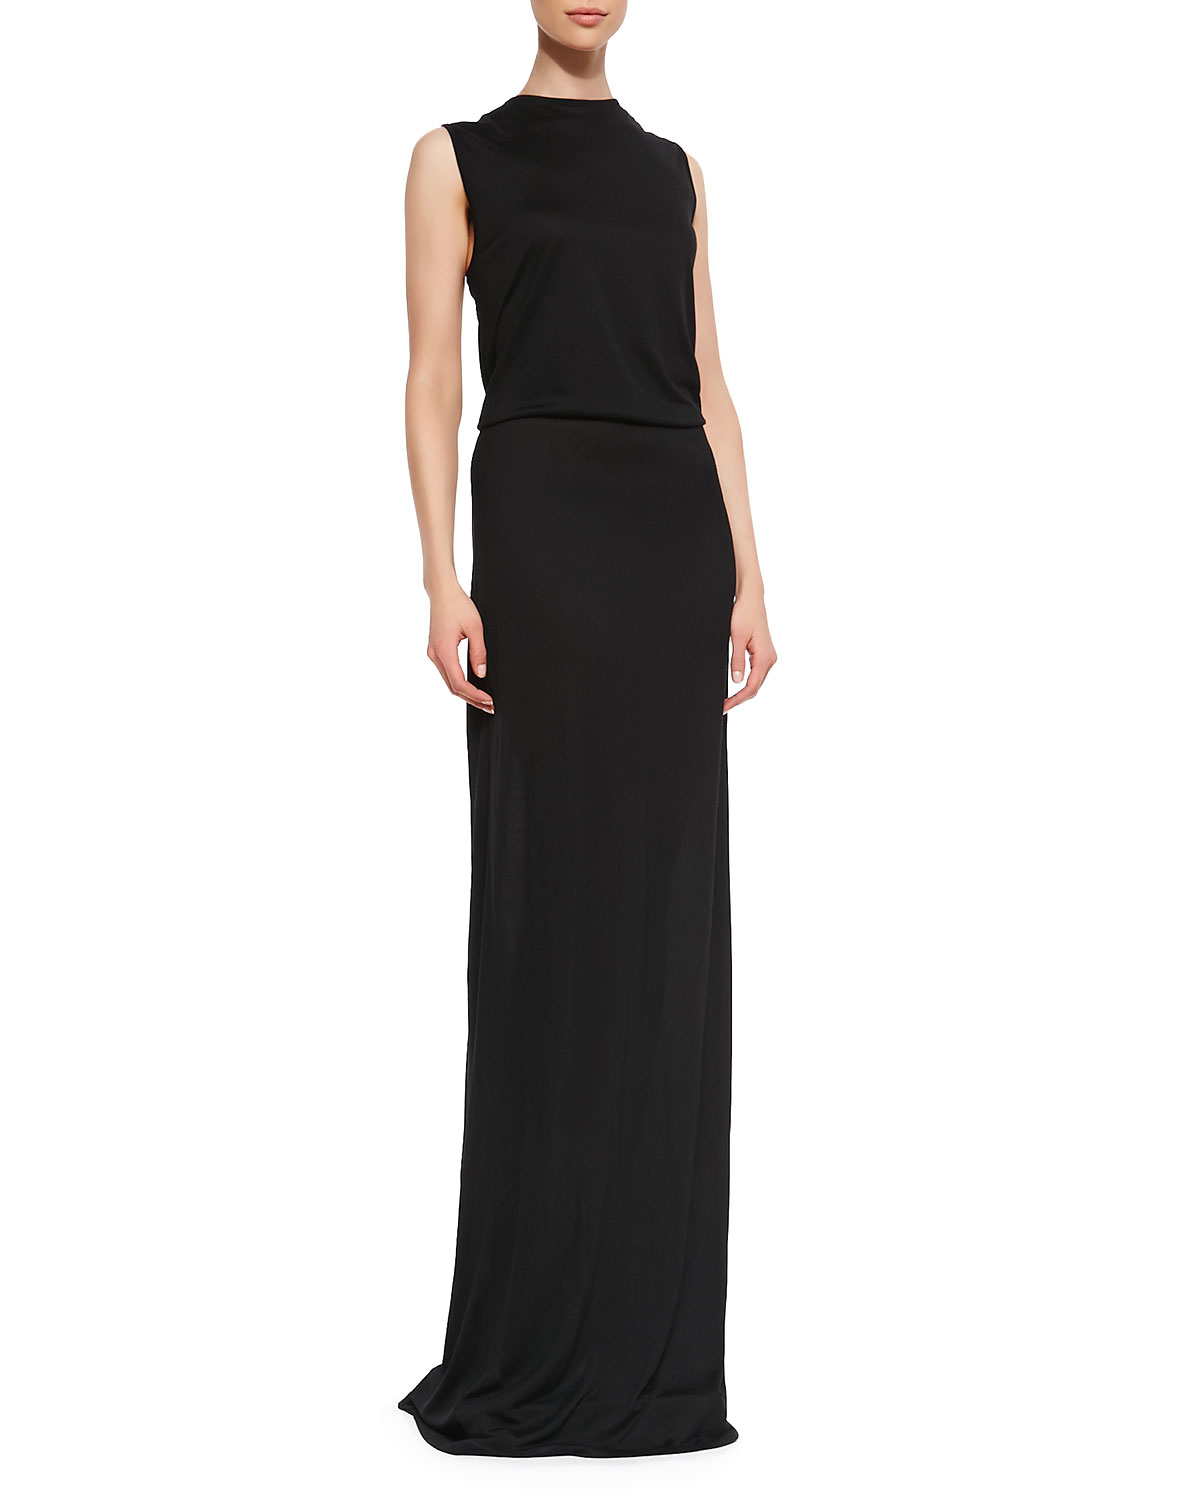 10 crosby derek lam knotted openback maxi dress in black for Derek lam 10 crosby shirt dress